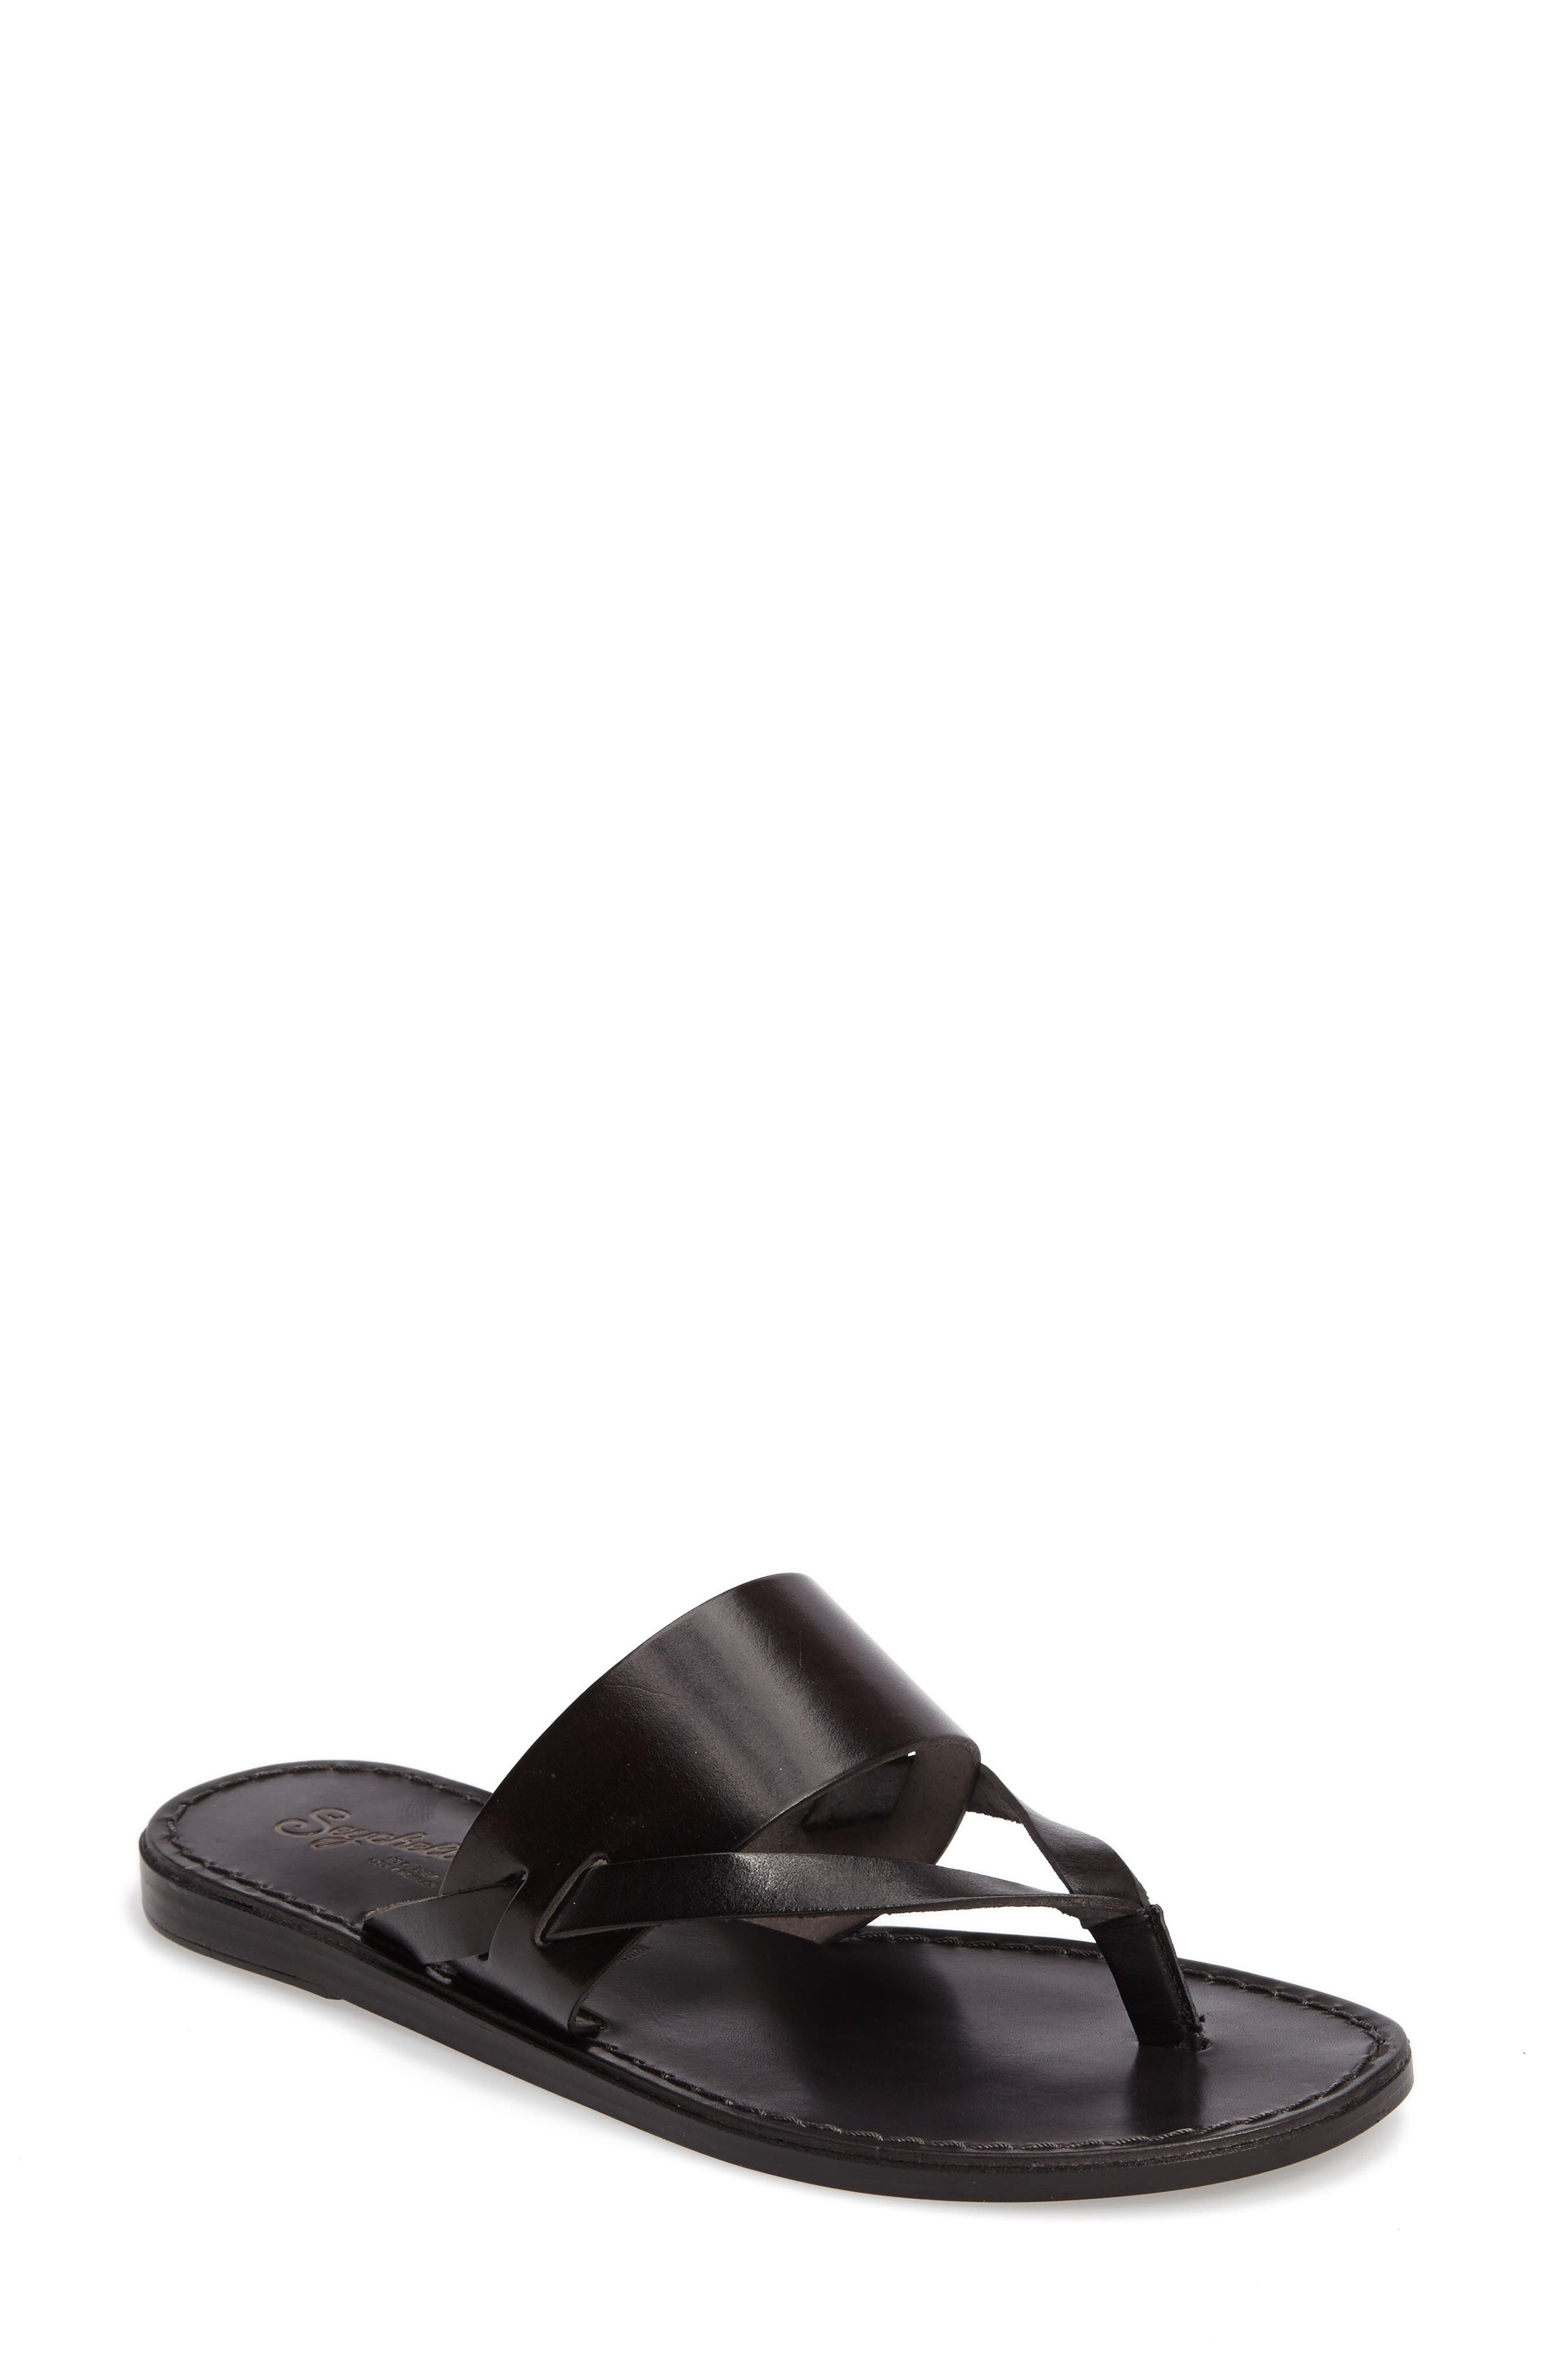 Alternate Image 1 Selected - Seychelles Mosaic Thong Sandal (Women)